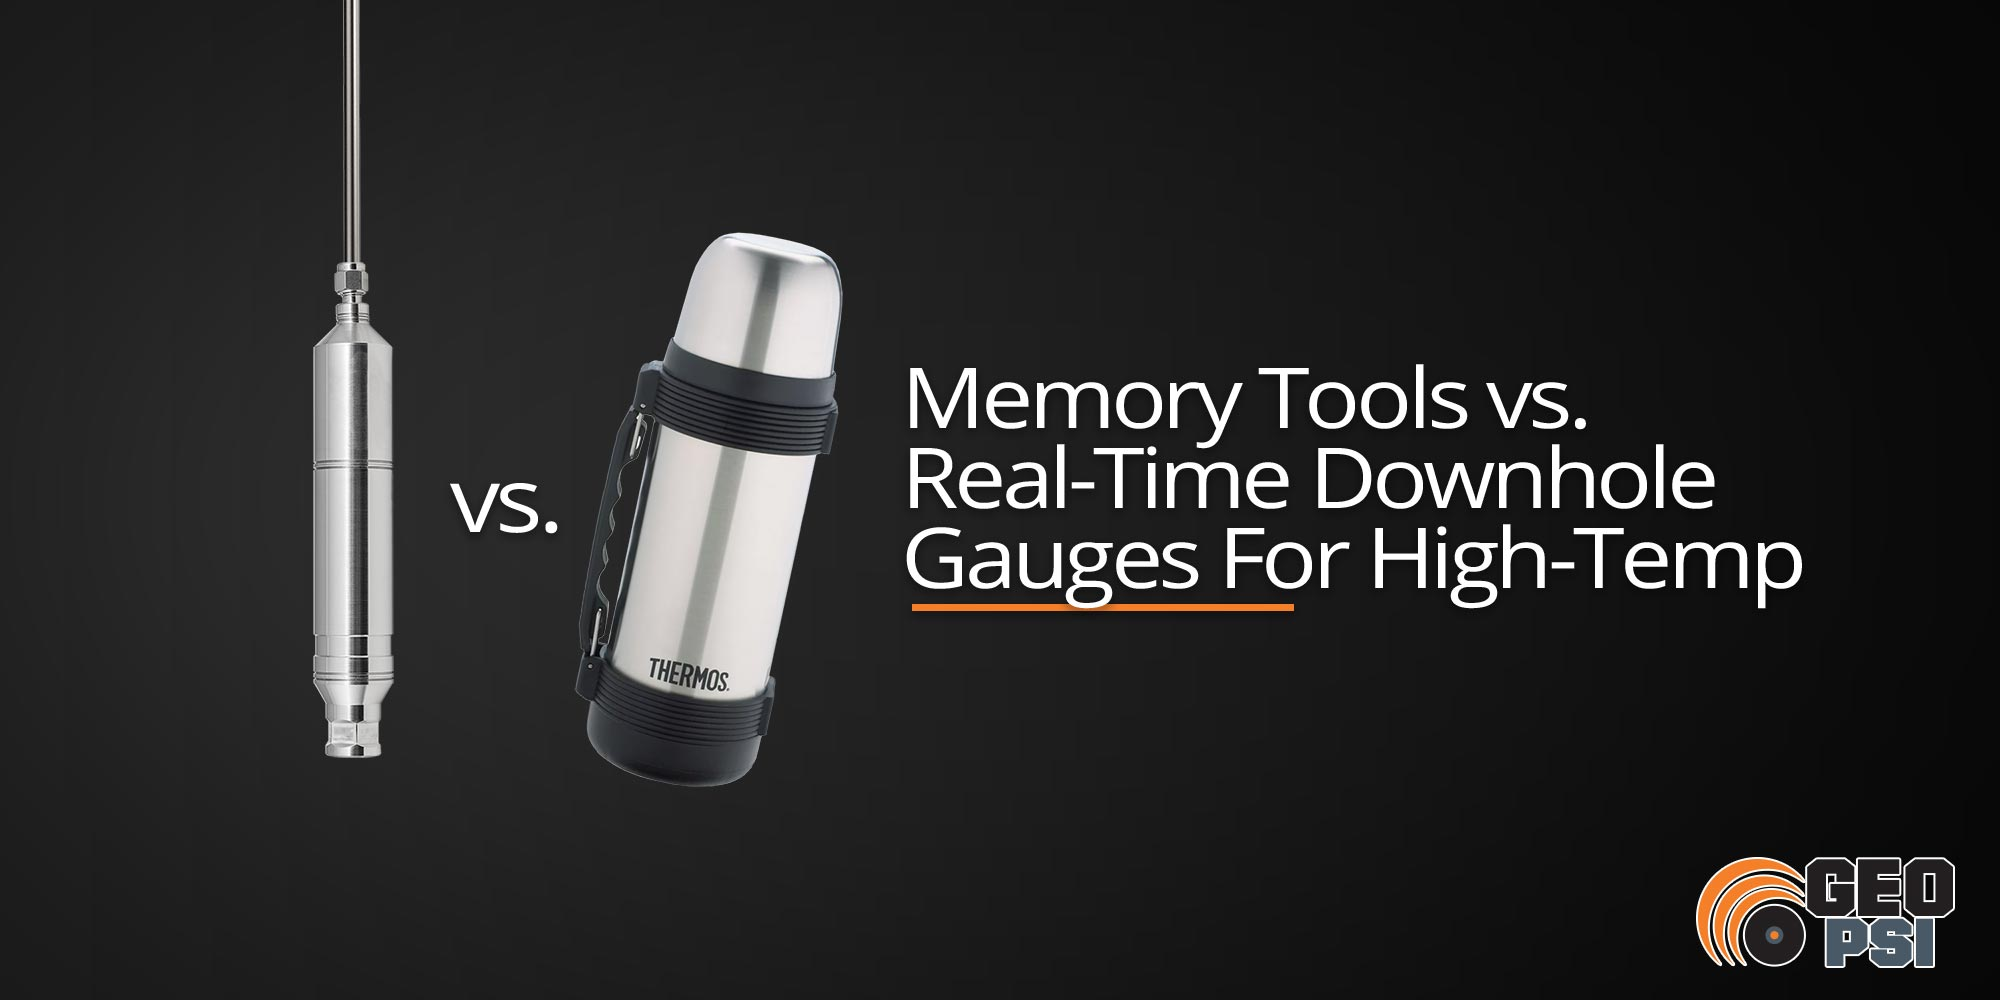 Memory Tools vs. Real-Time Downhole Gauges For High-Temp